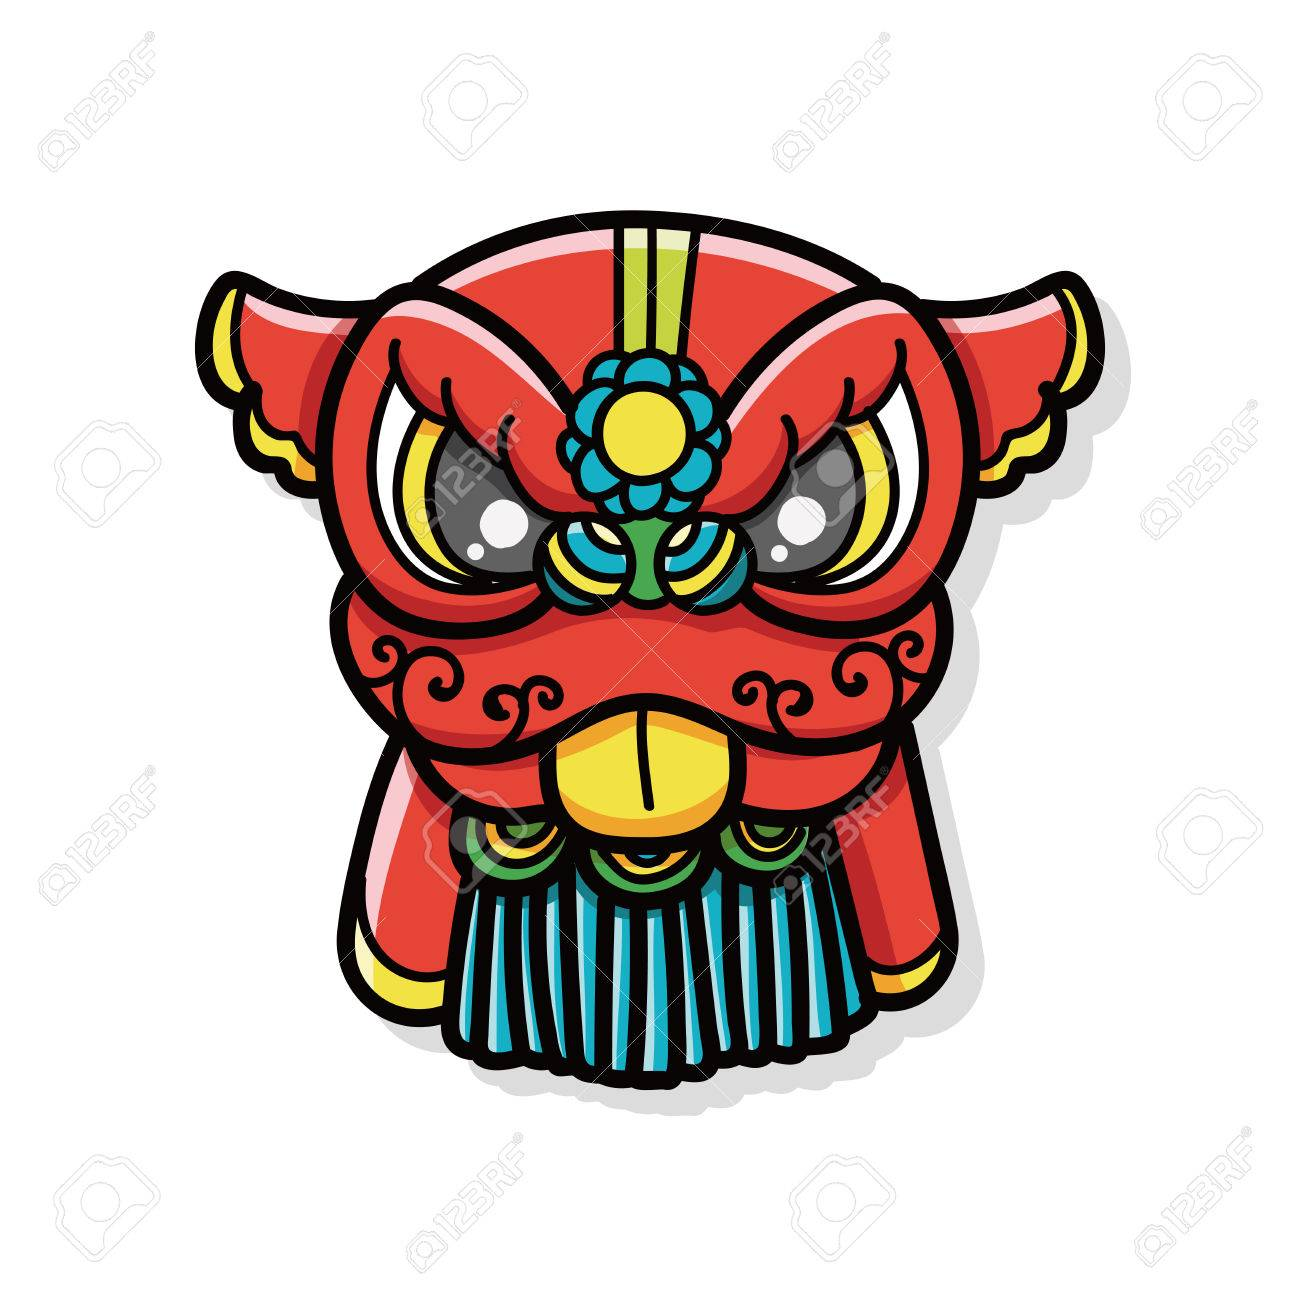 Uncategorized Chinese New Year Lion chinese new year dragon and lion dancing head doodle royalty free stock vector 45907446